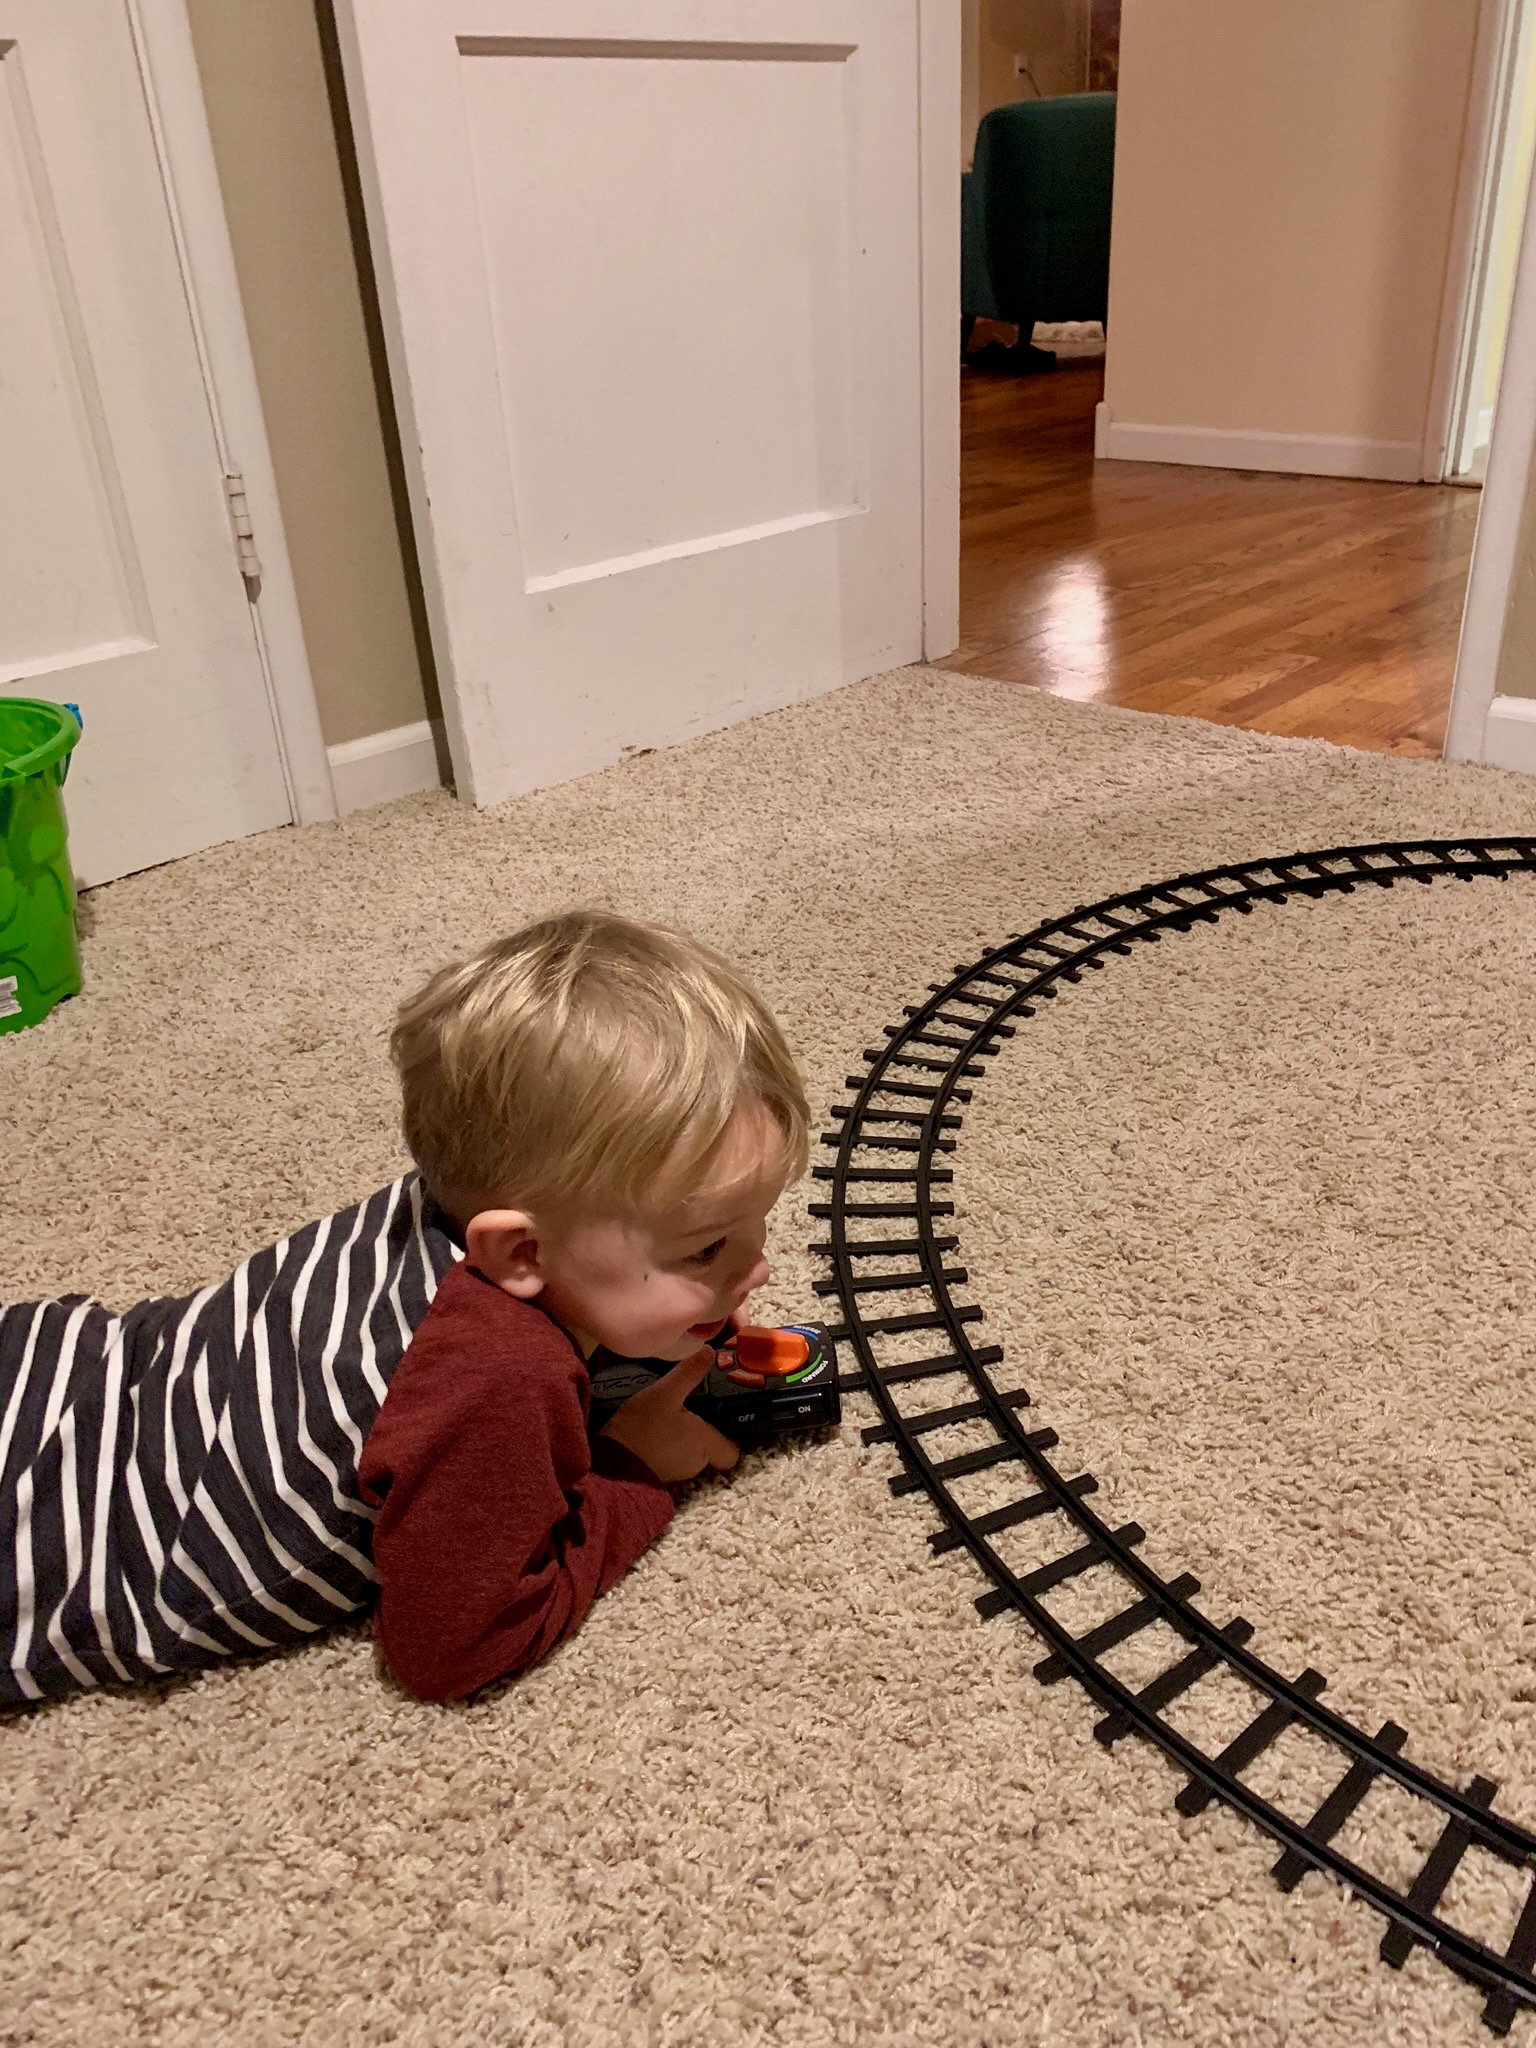 A Favorite Gift: Polar Express Lionel Train